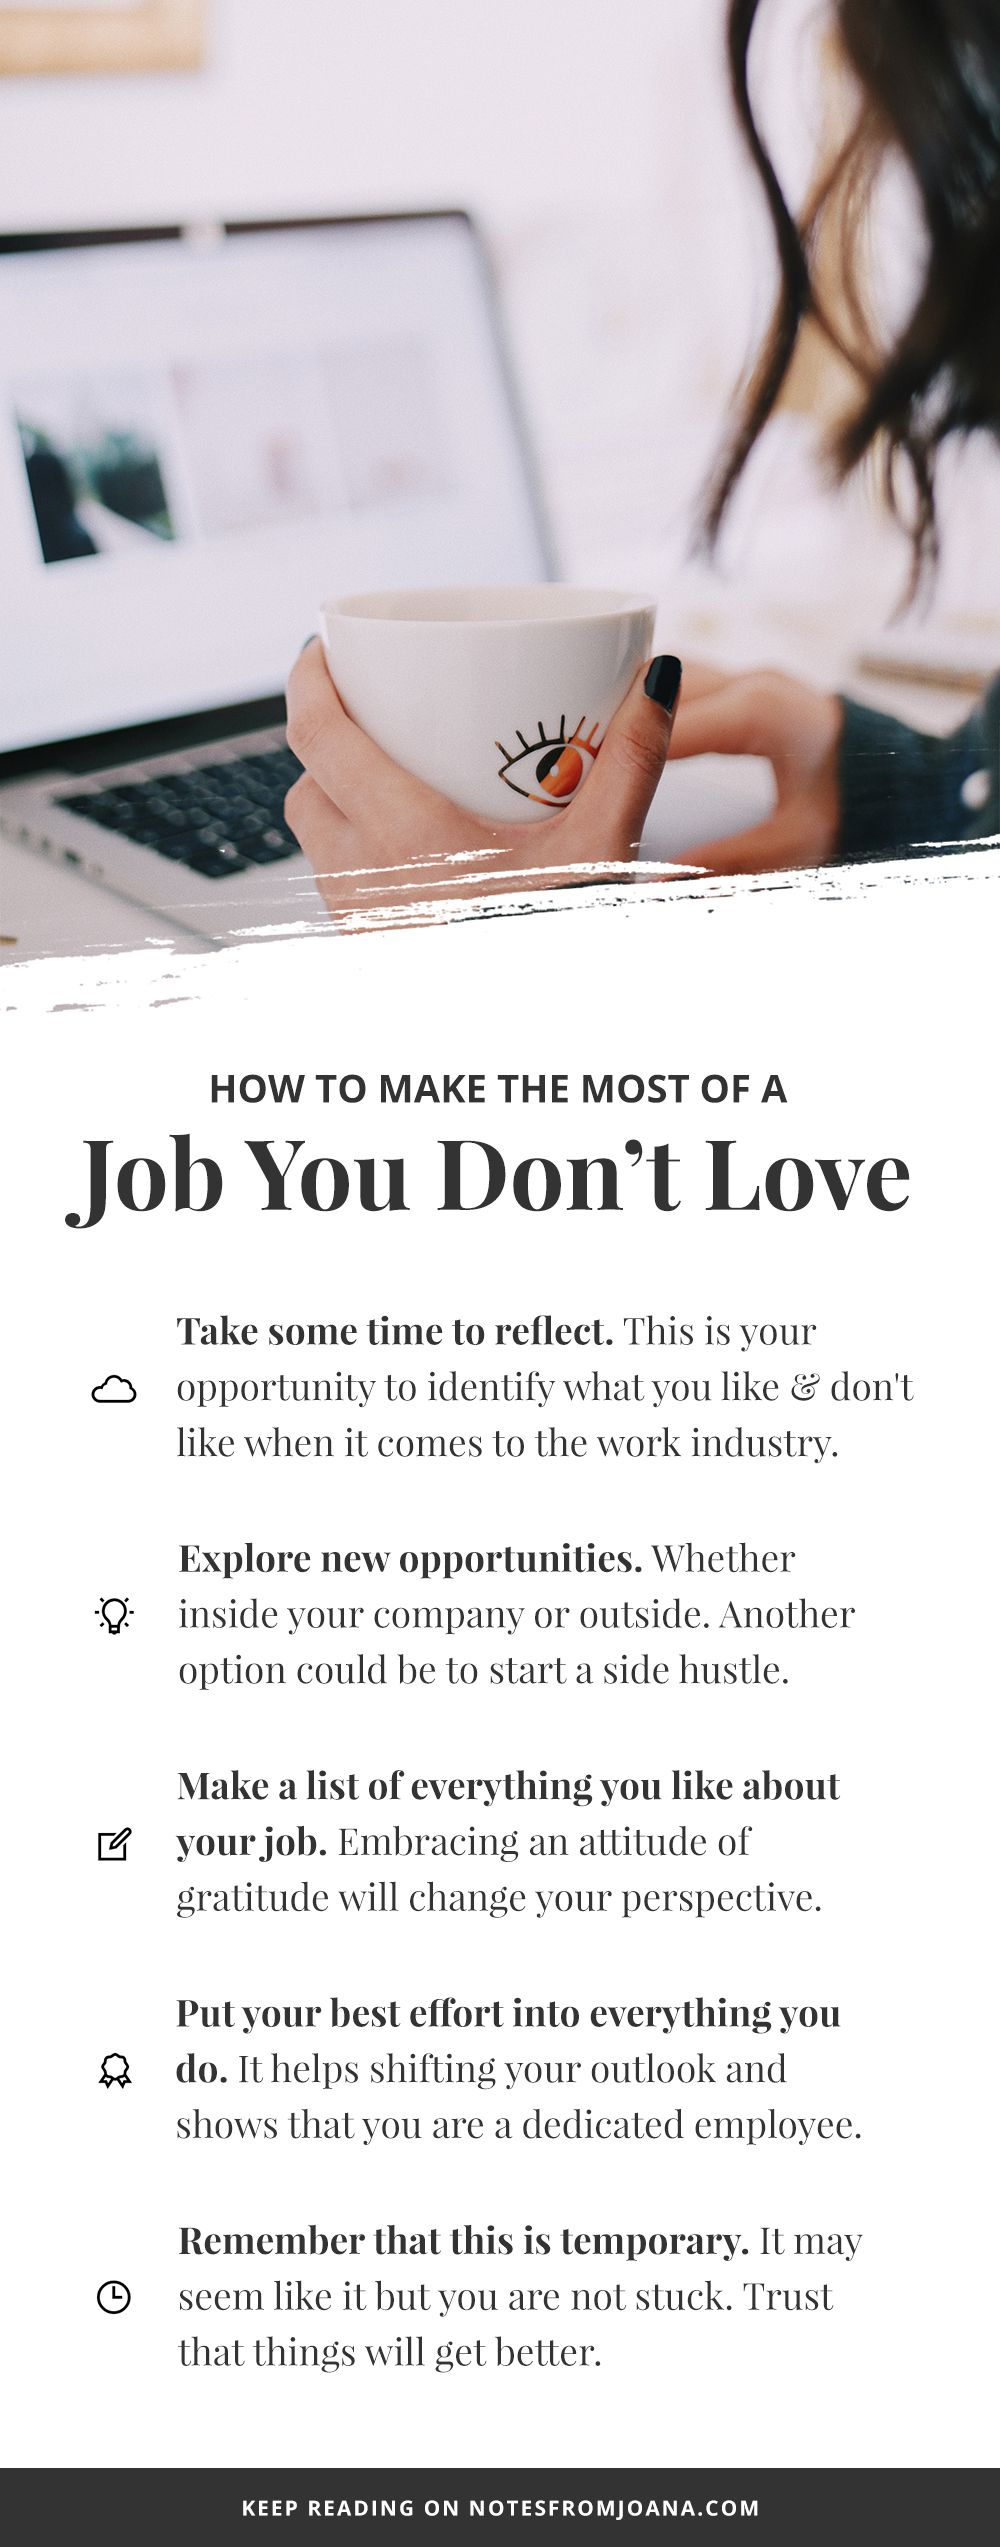 How To Make The Most Of A Job You Donu0027t Love